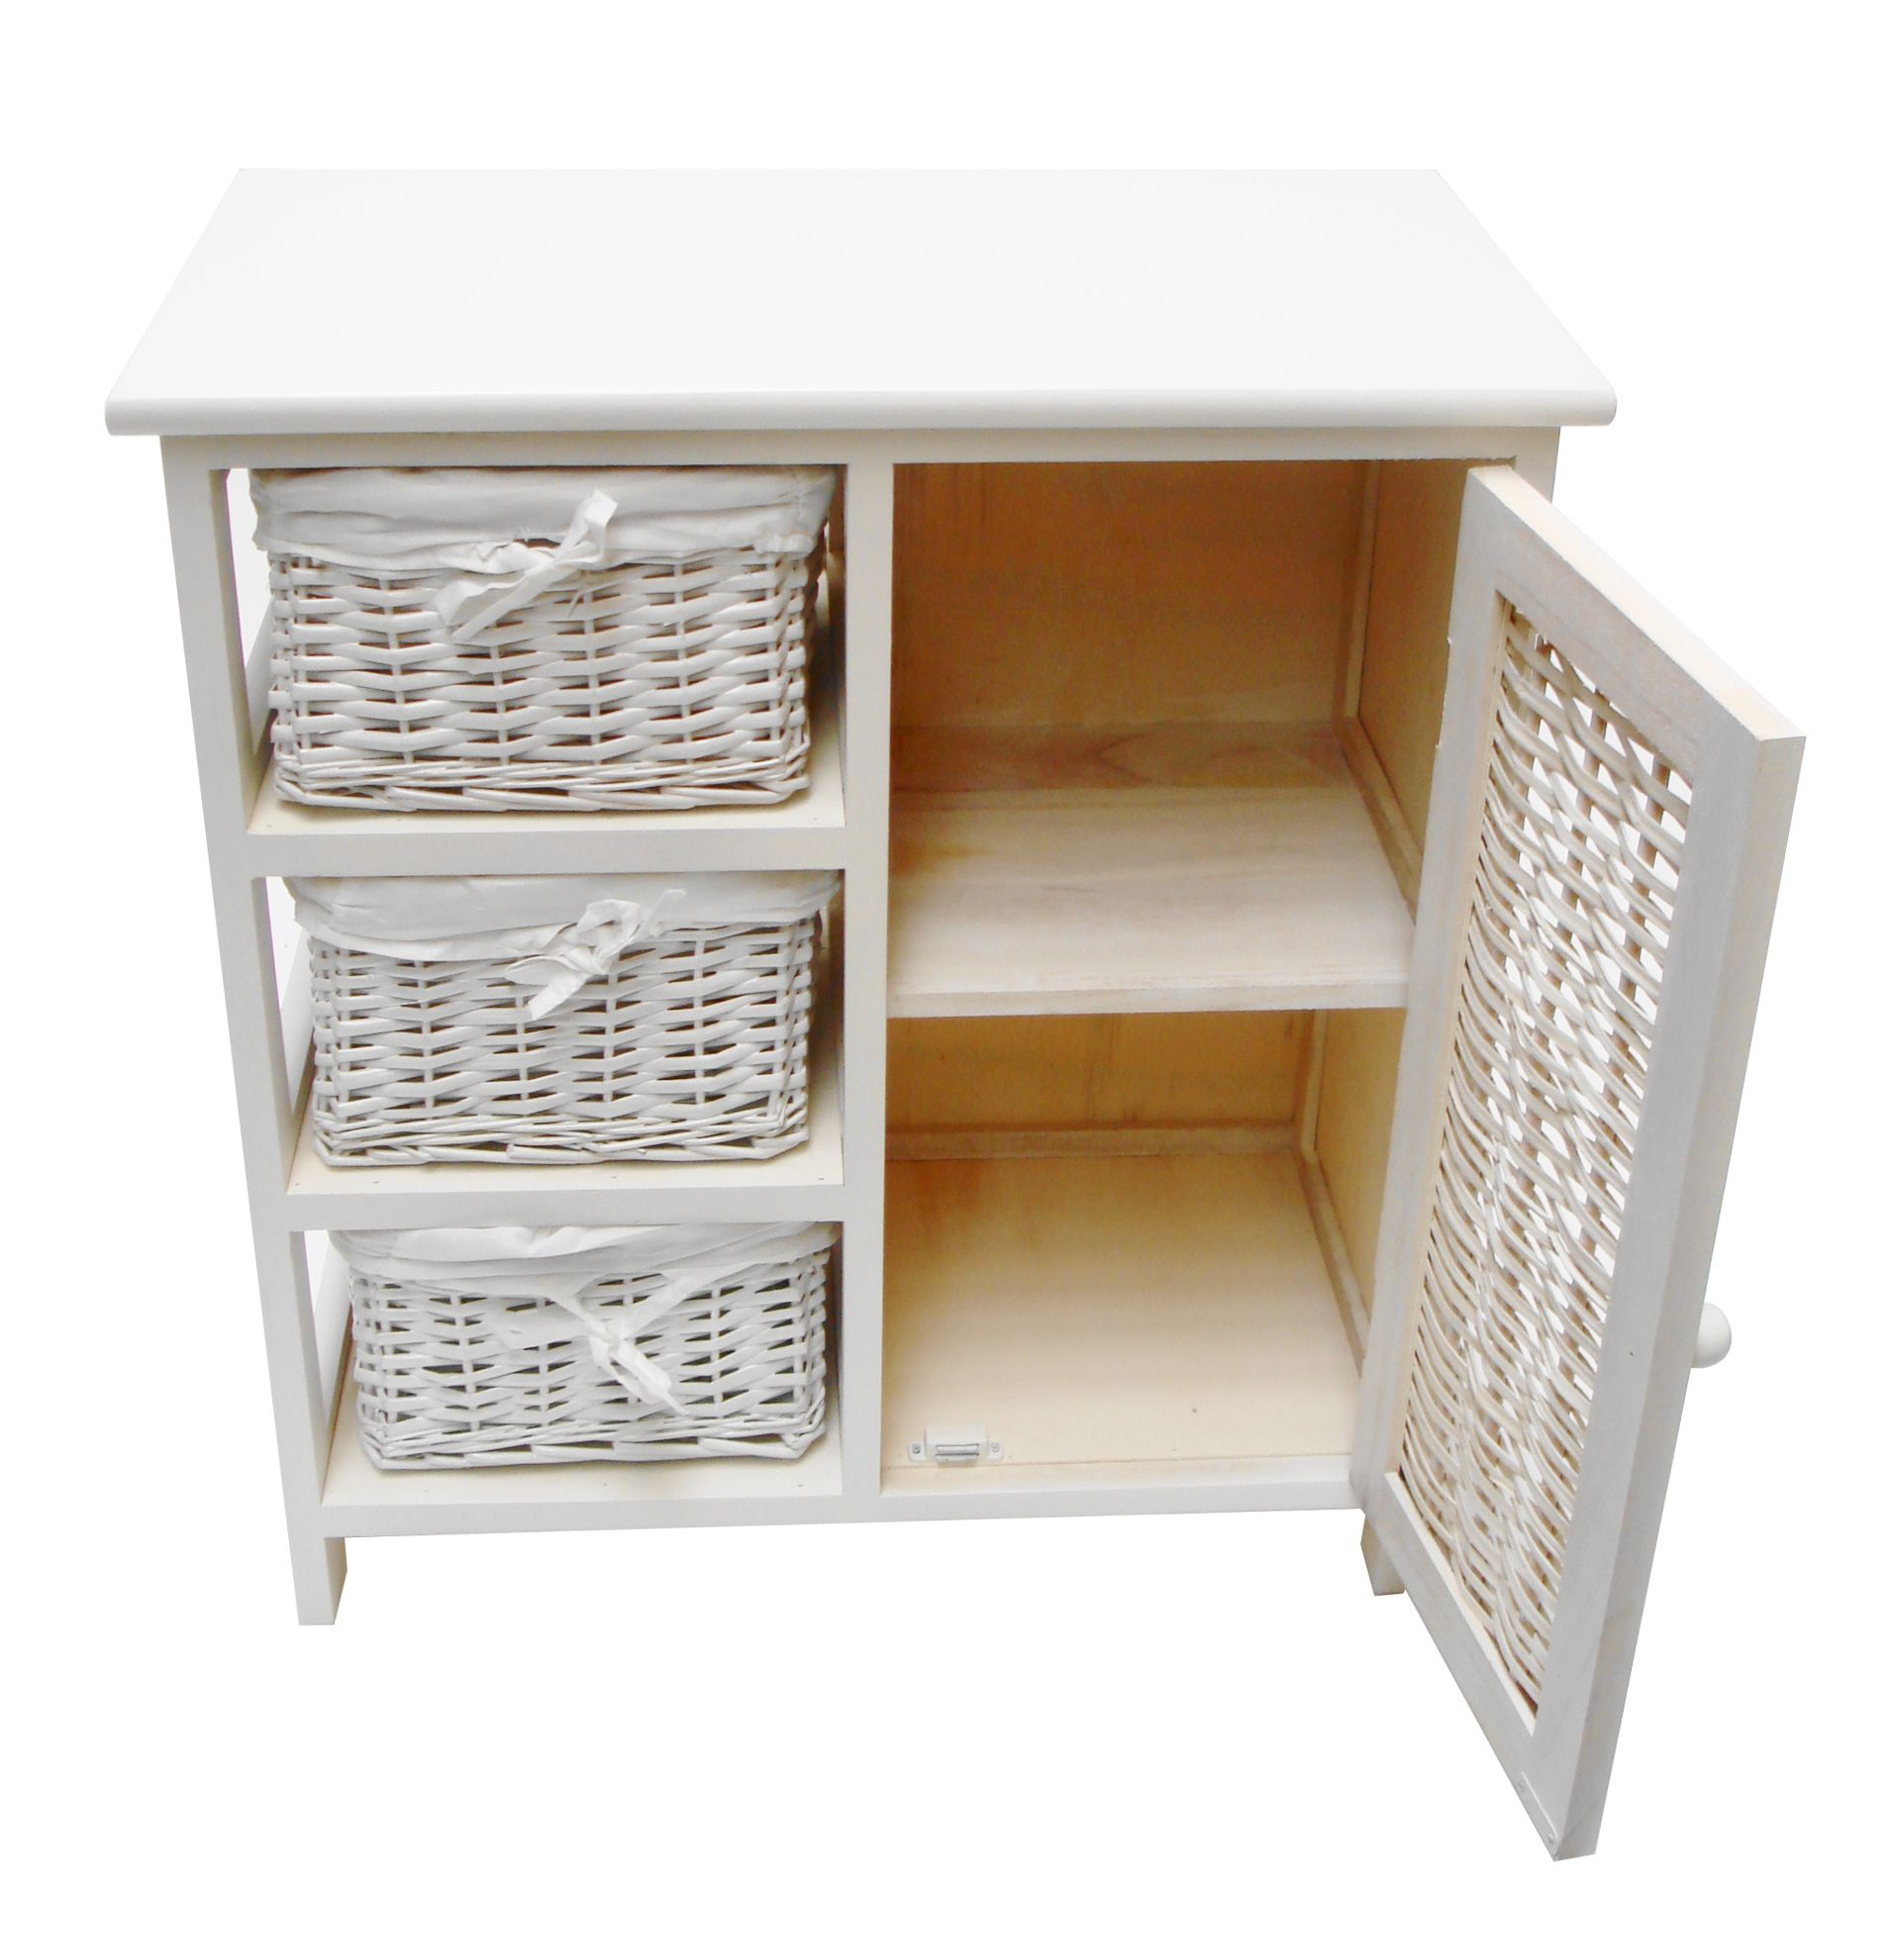 3 Chest Of Drawers With Cupboard Bedside Table Bathroom Storage Unit Cabinet 3drcup2hez W